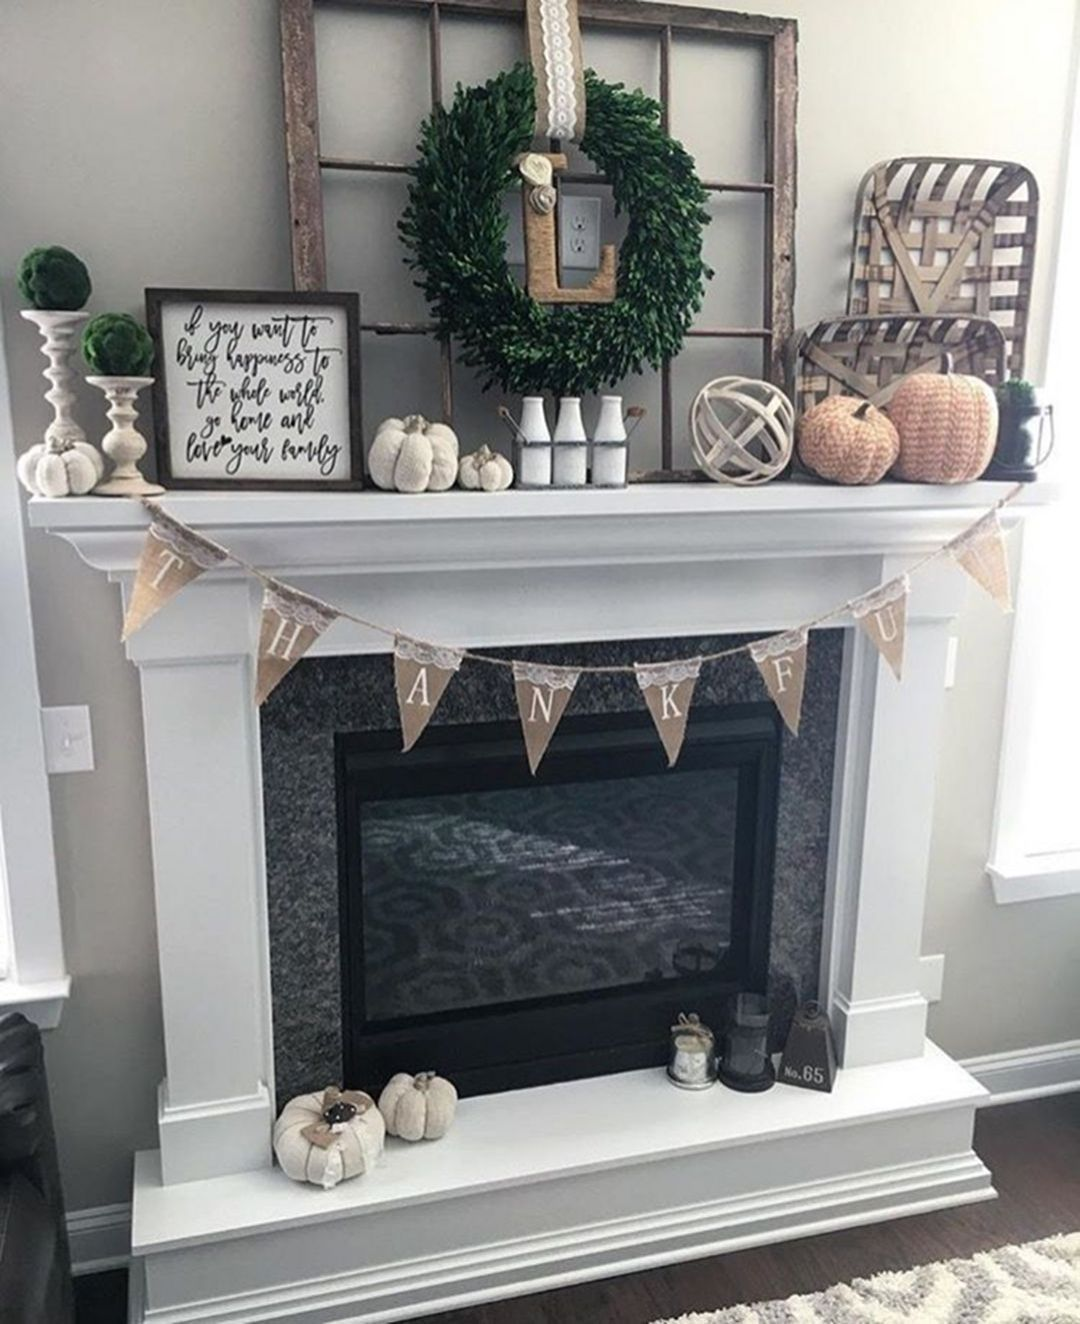 Goegeous farmhouse fireplace mantel decorations #fallmantledecor